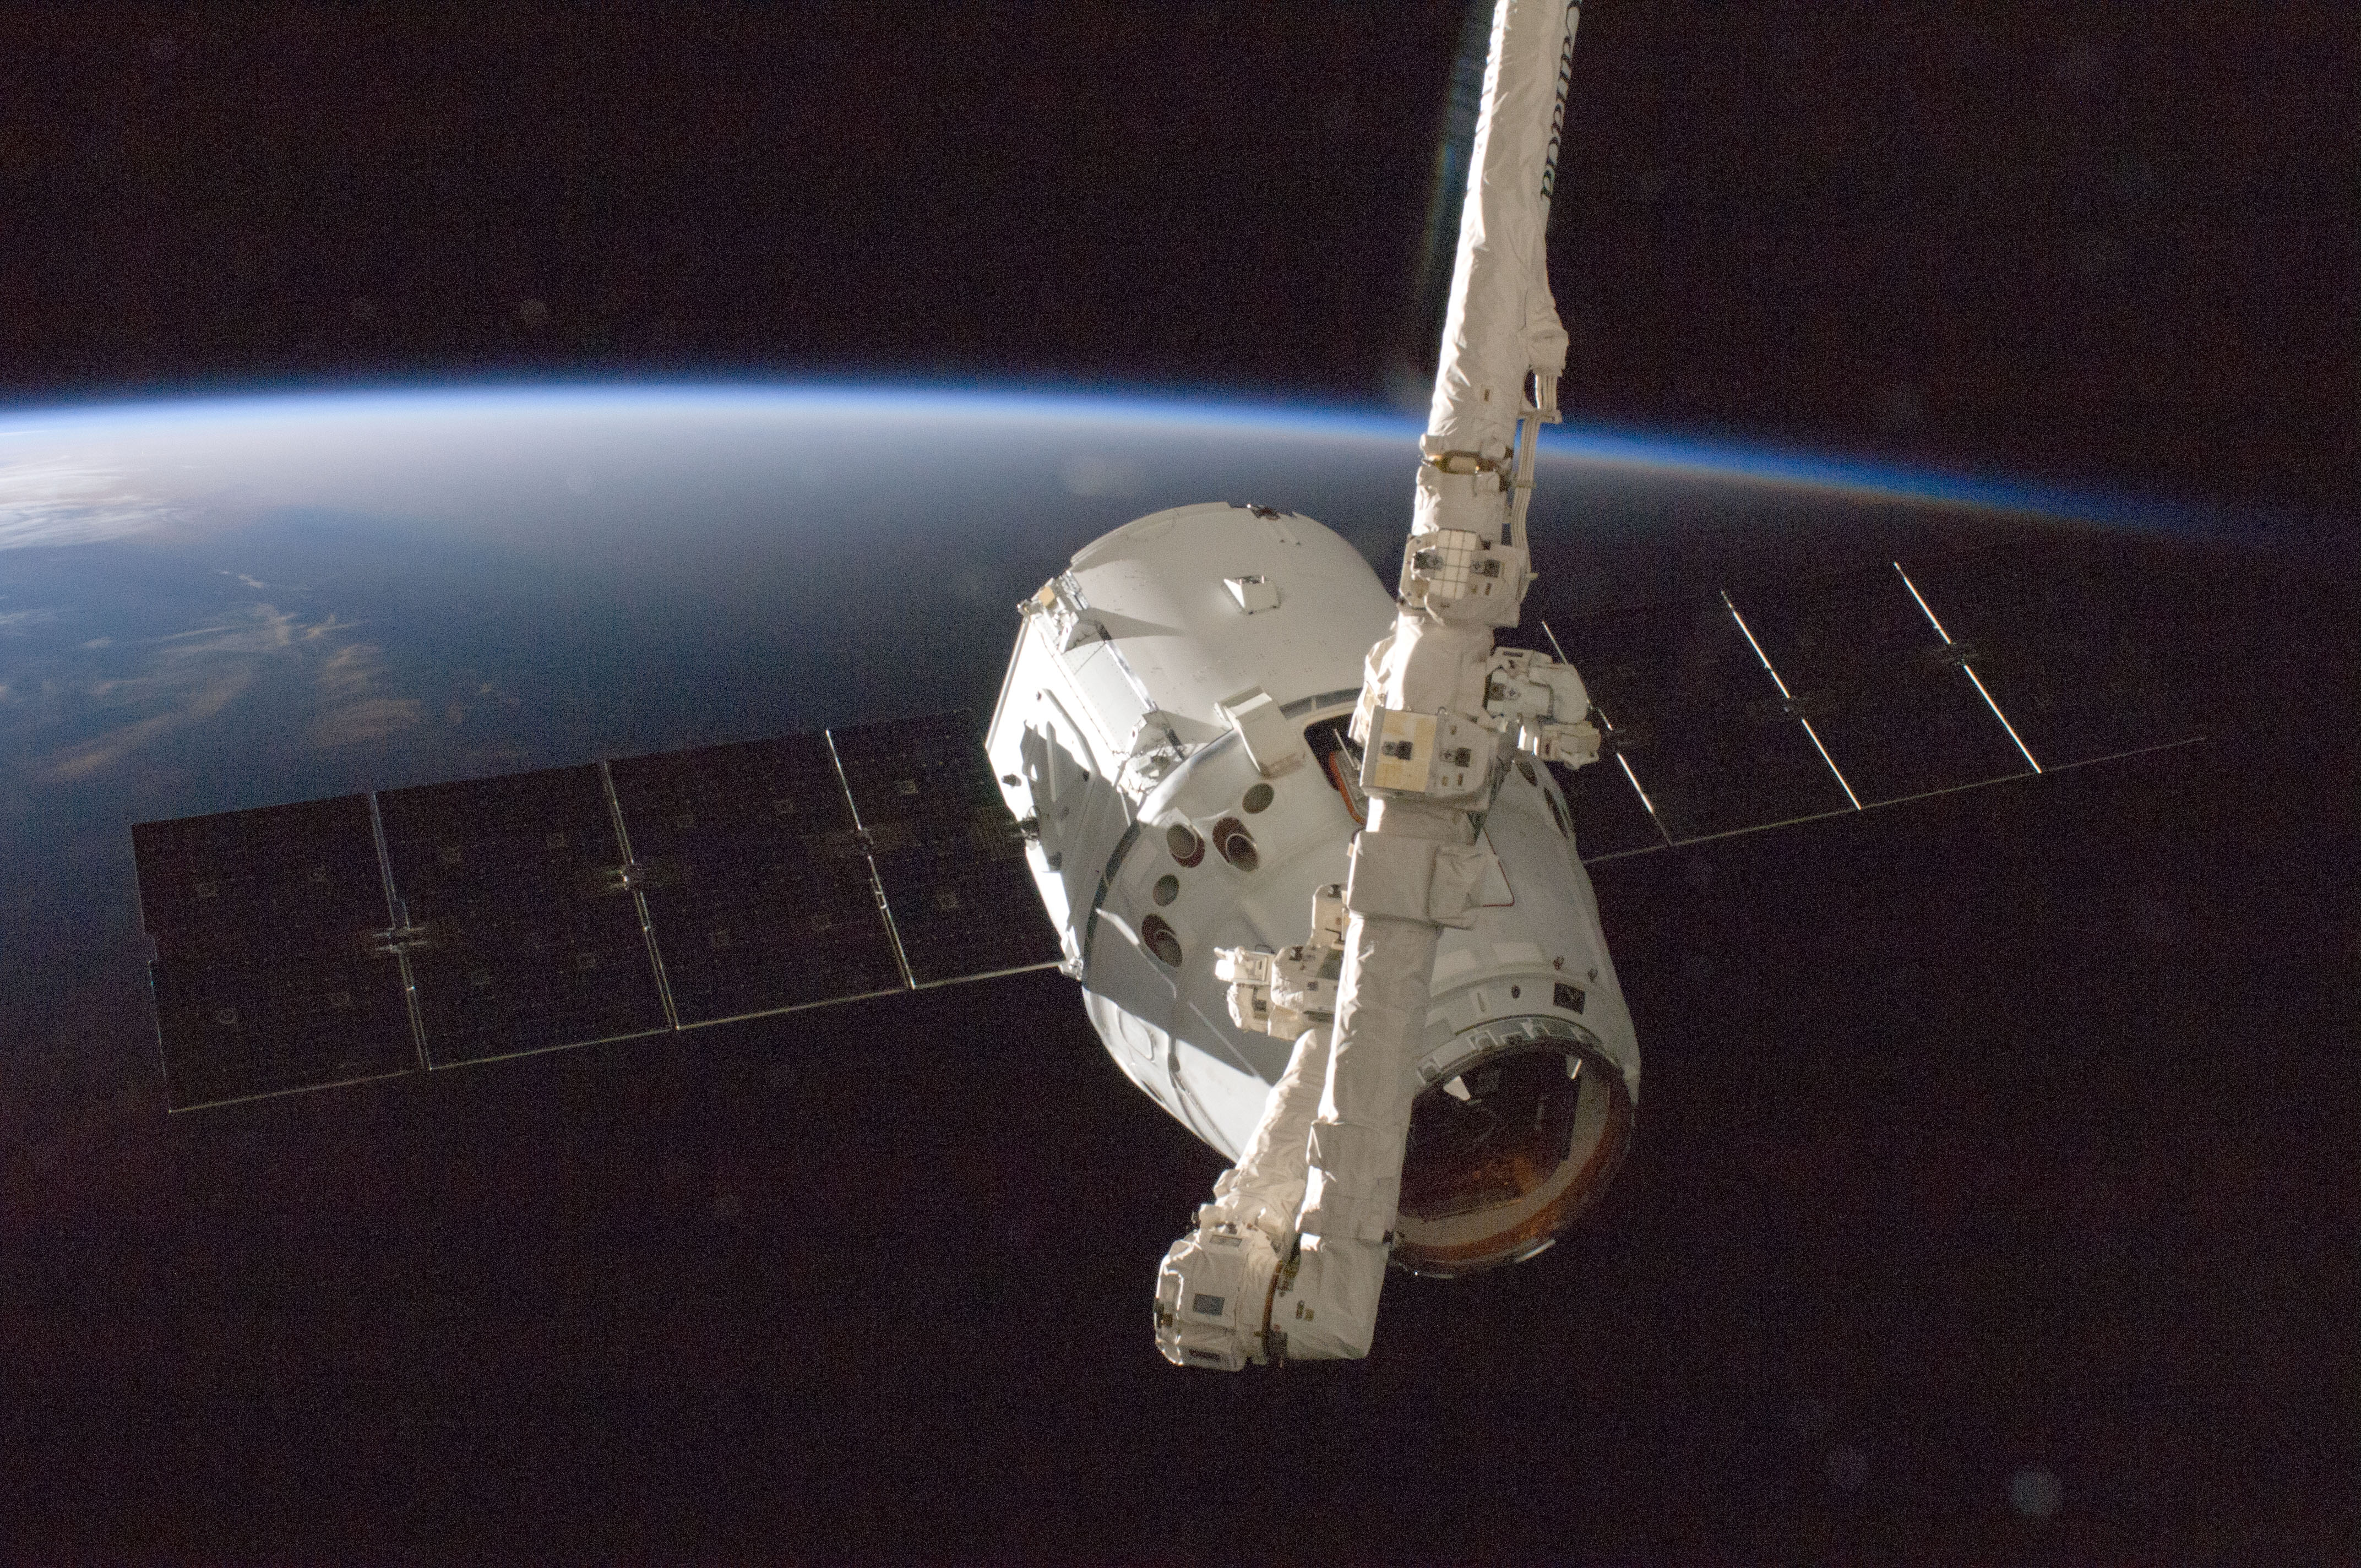 Private Space Taxi Builders On Track to Launch Astronauts Soon